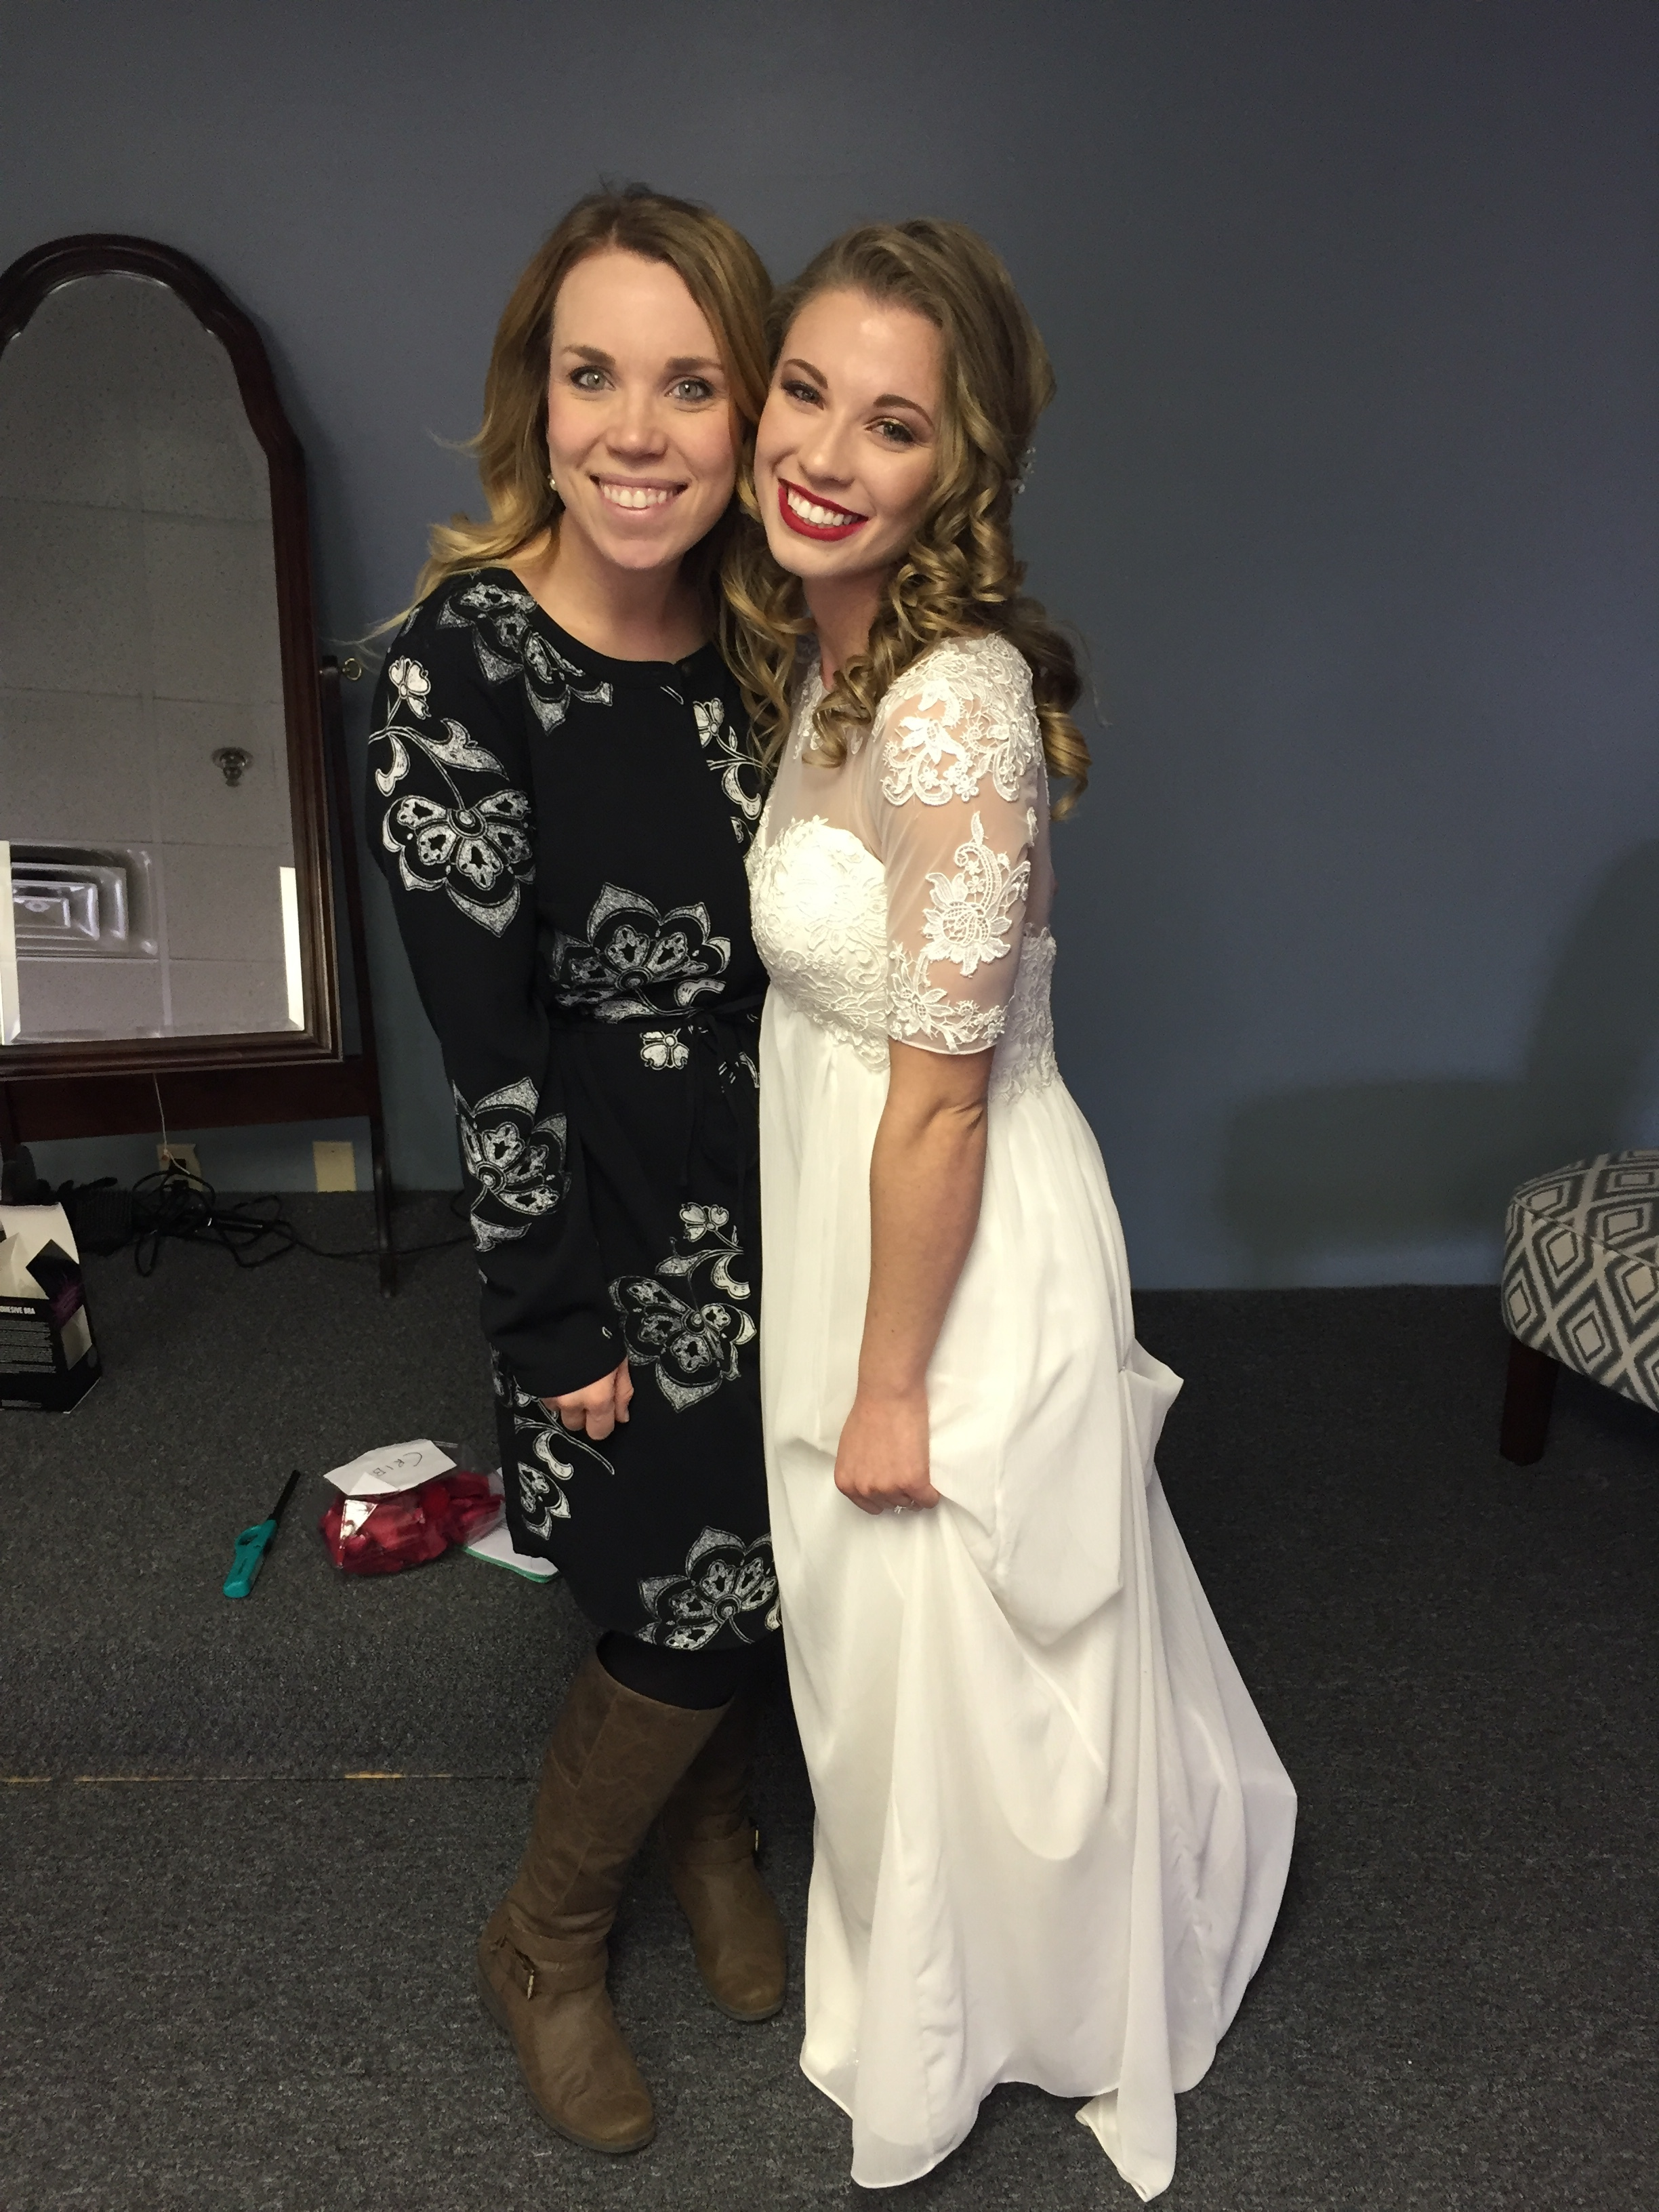 Little fun fact: The first memory I have of Haleigh was when I went to her house to hang out with her old sister, who also happens to be my dear friend, Kenna. Haleigh heard of my love for Harry Potter and left a Ministry of Magic sign on the toilet seat. Haha! This girl is my long lost soulmate! ps- When the girl next to you is wearing red lipstick, you should at least wear some form of lip gloss or SOMETHING.